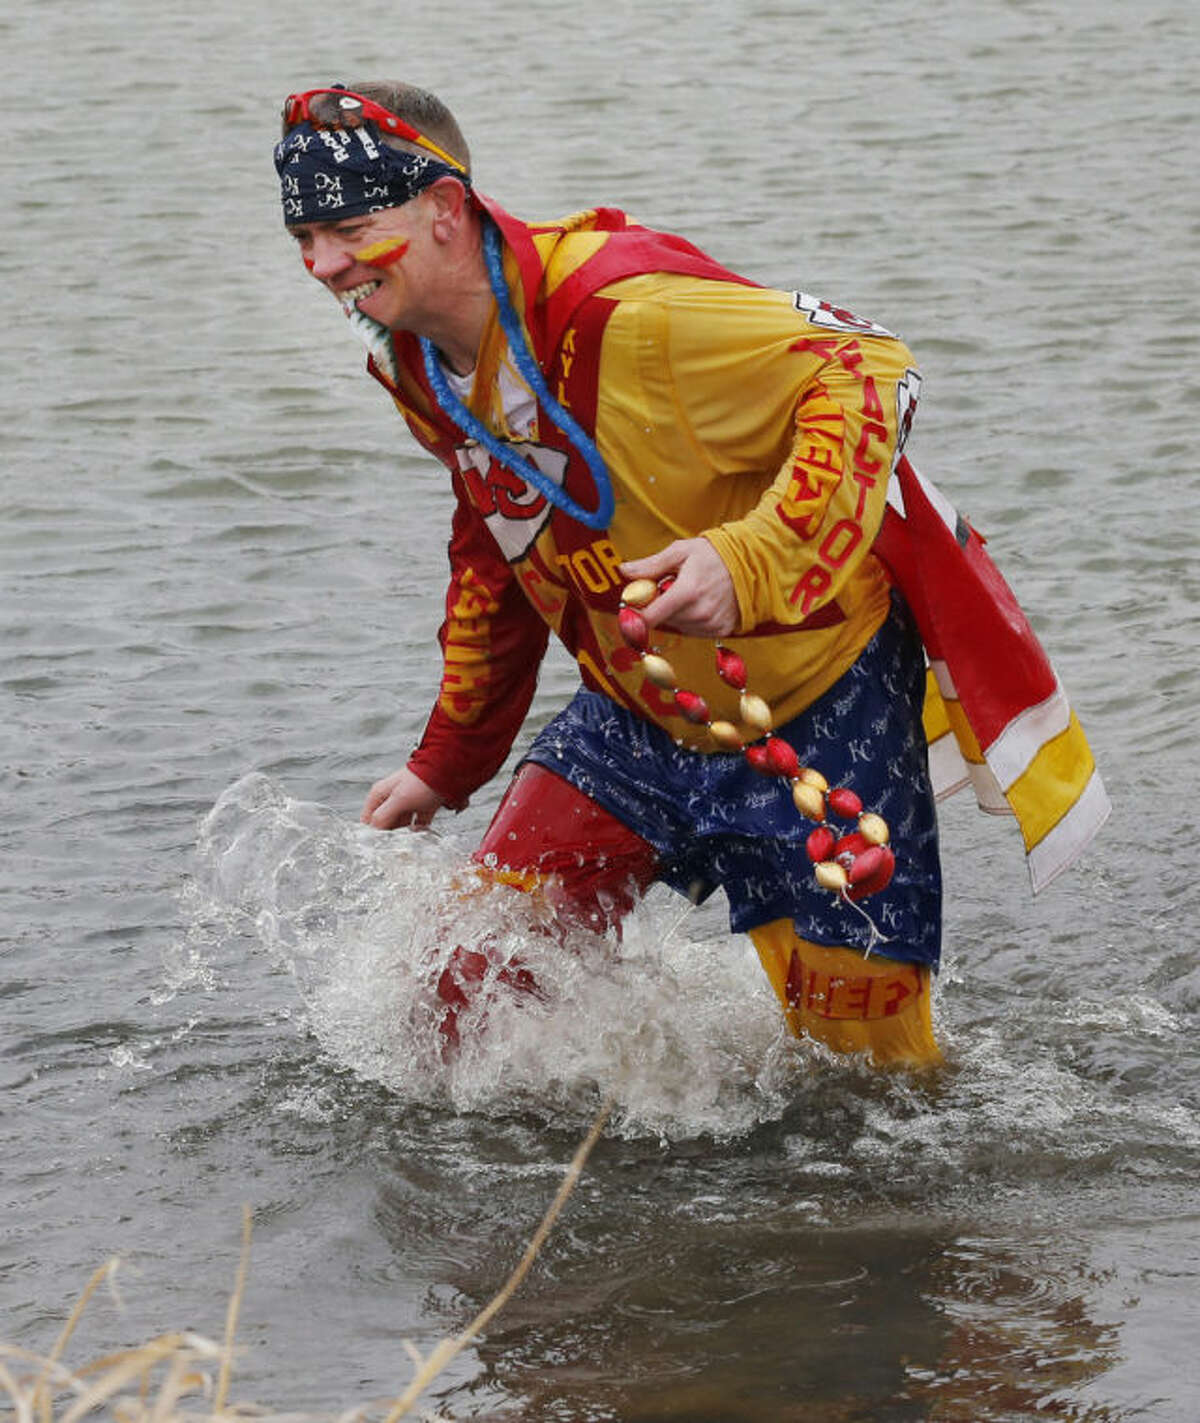 Kansas City Chiefs fan Ty Rowton, known as XFactor, retrieves part of his costume after takeing a Plunge for Landon in a farm pond near Bonner Springs, Kan., Friday, April 4, 2014. A 5-month-old boy's battle with cancer has inspired hundreds to jump into cold bodies of water, from a local golf course pond to the Gulf of Mexico and even the Potomac River in Washington, D.C. (AP Photo/Orlin Wagner)